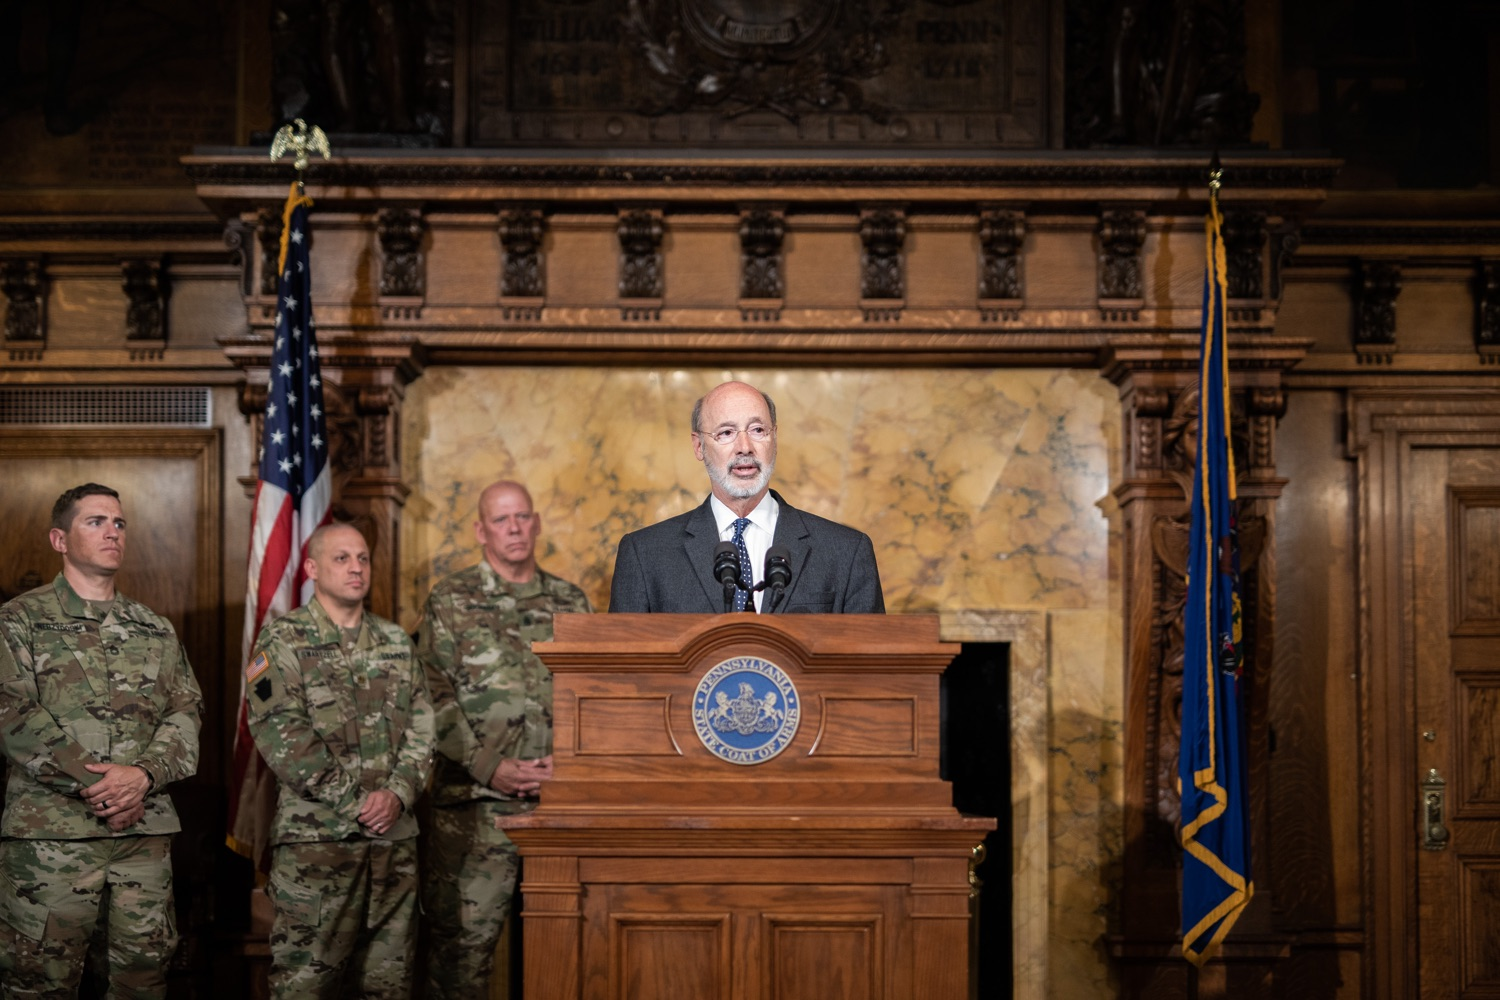 """<a href=""""https://filesource.wostreaming.net/commonwealthofpa/photo/17423_gov_trip_recap_dz_007.jpg"""" target=""""_blank"""">⇣Download Photo<br></a>Harrisburg, PA  Governor Tom Wolf speaking about his recent visit to Lithuania and Poland.  Governor Tom Wolf today highlighted the second half of his trip abroad, including visiting with more than 500 PA National Guard (PNG) troops in Poland, and honoring the Tree of Life synagogue victims at the Auschwitz-Birkenau Memorial. Tuesday, September 17, 2019"""